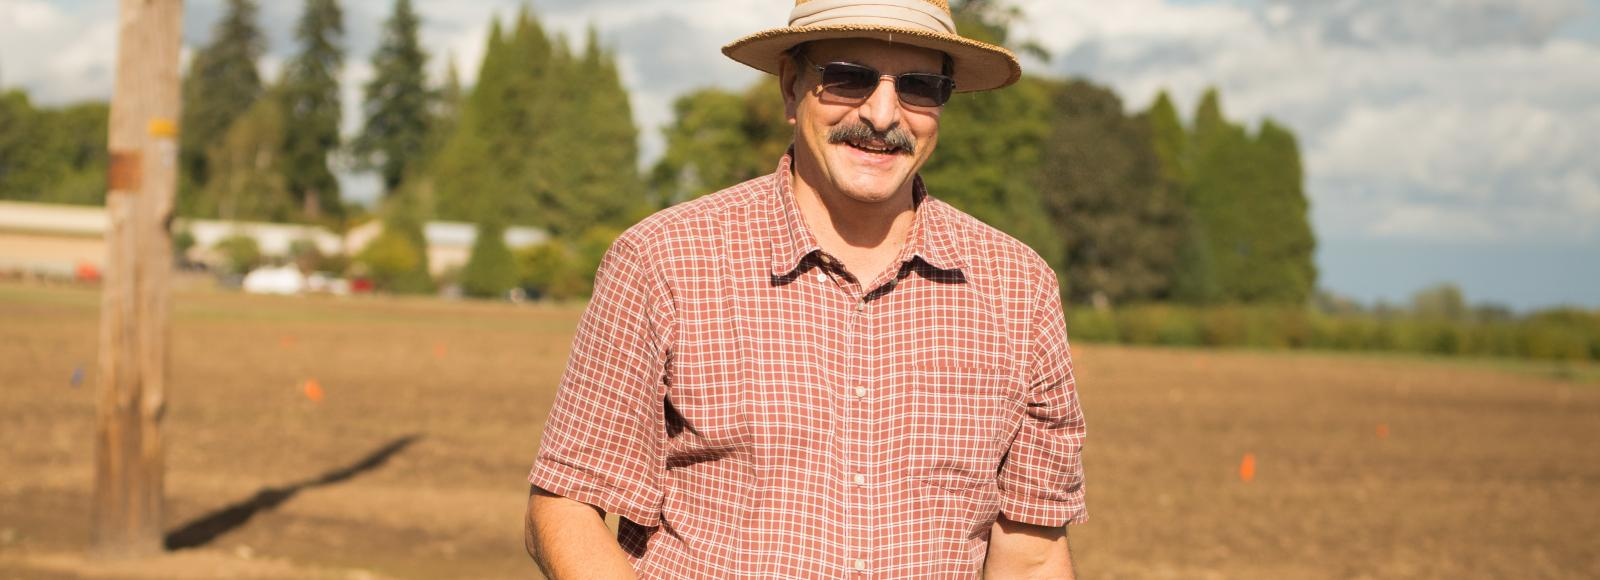 Jim Myers in a field holding a tomato he bred.